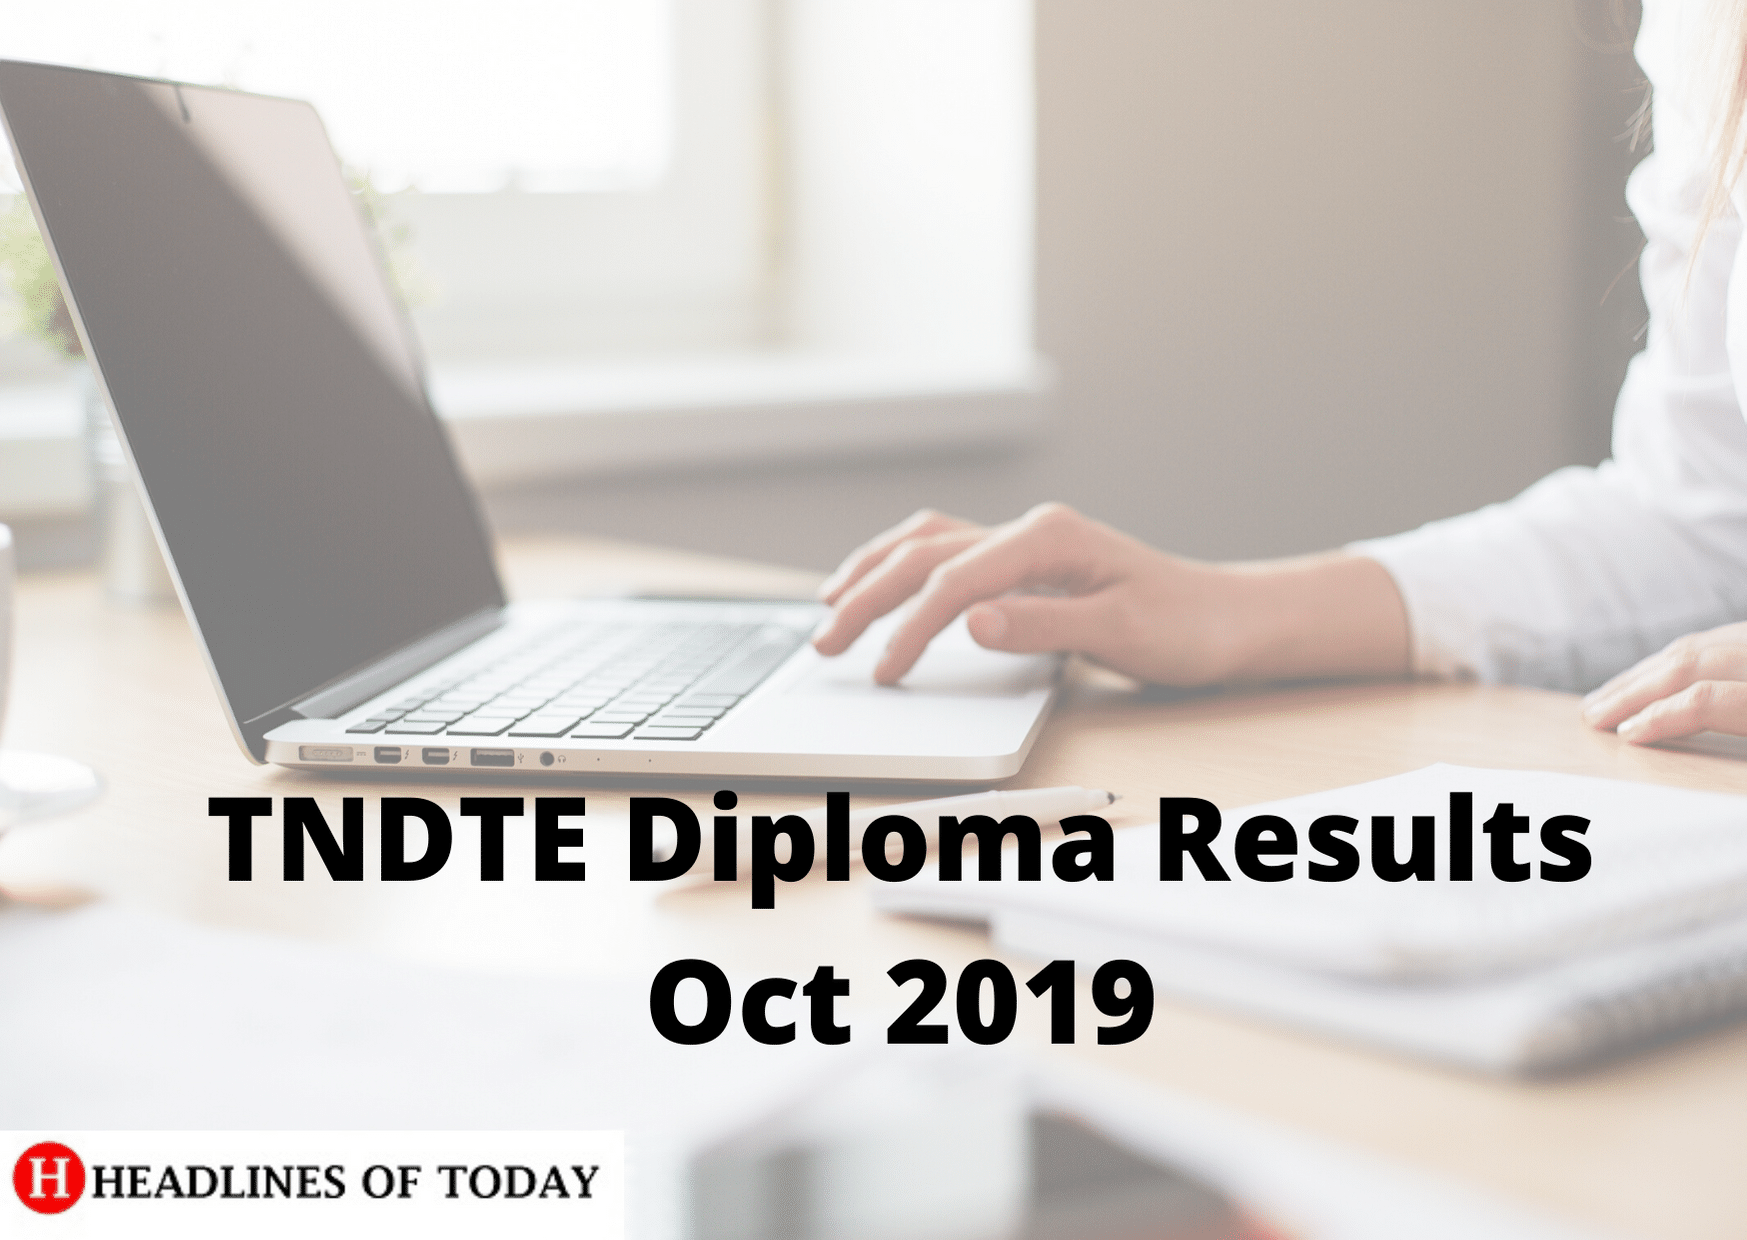 TNDTE Diploma Results